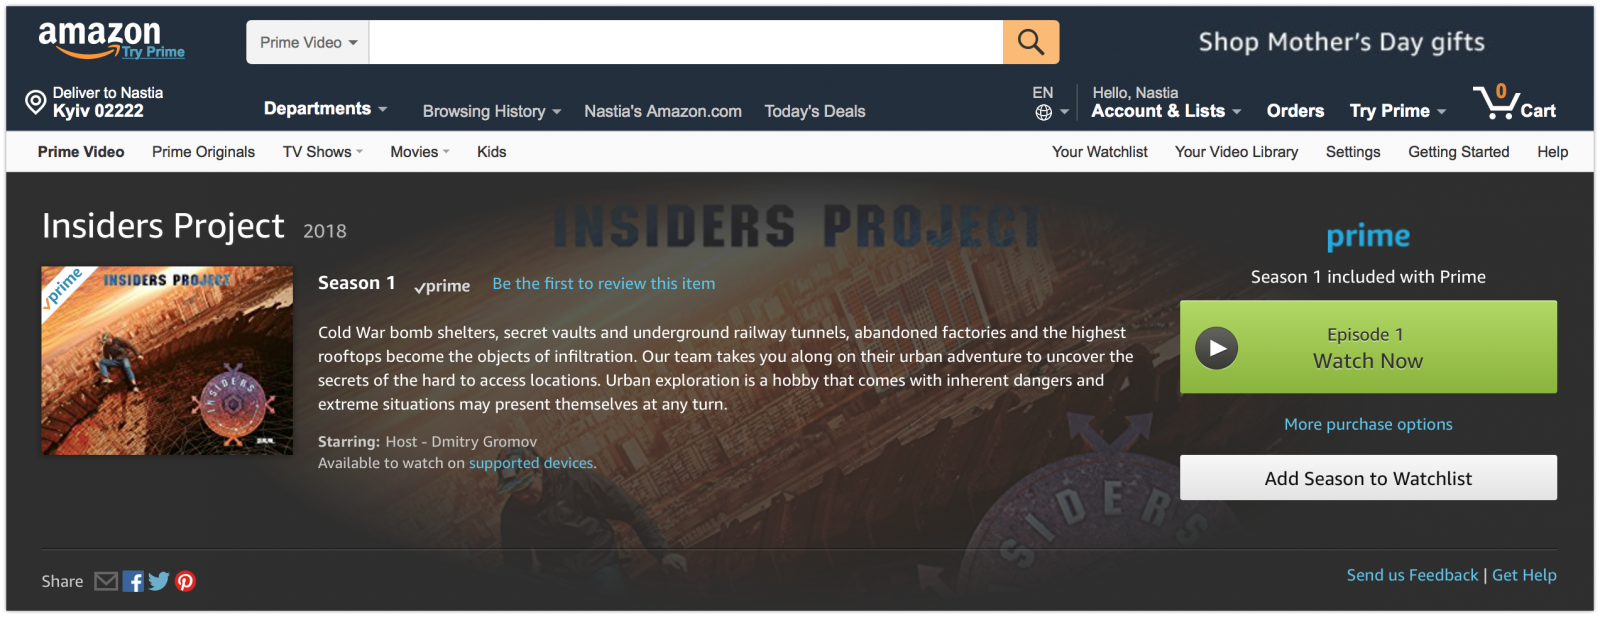 Digital Premiere at Amazon: The Insiders Project documentary